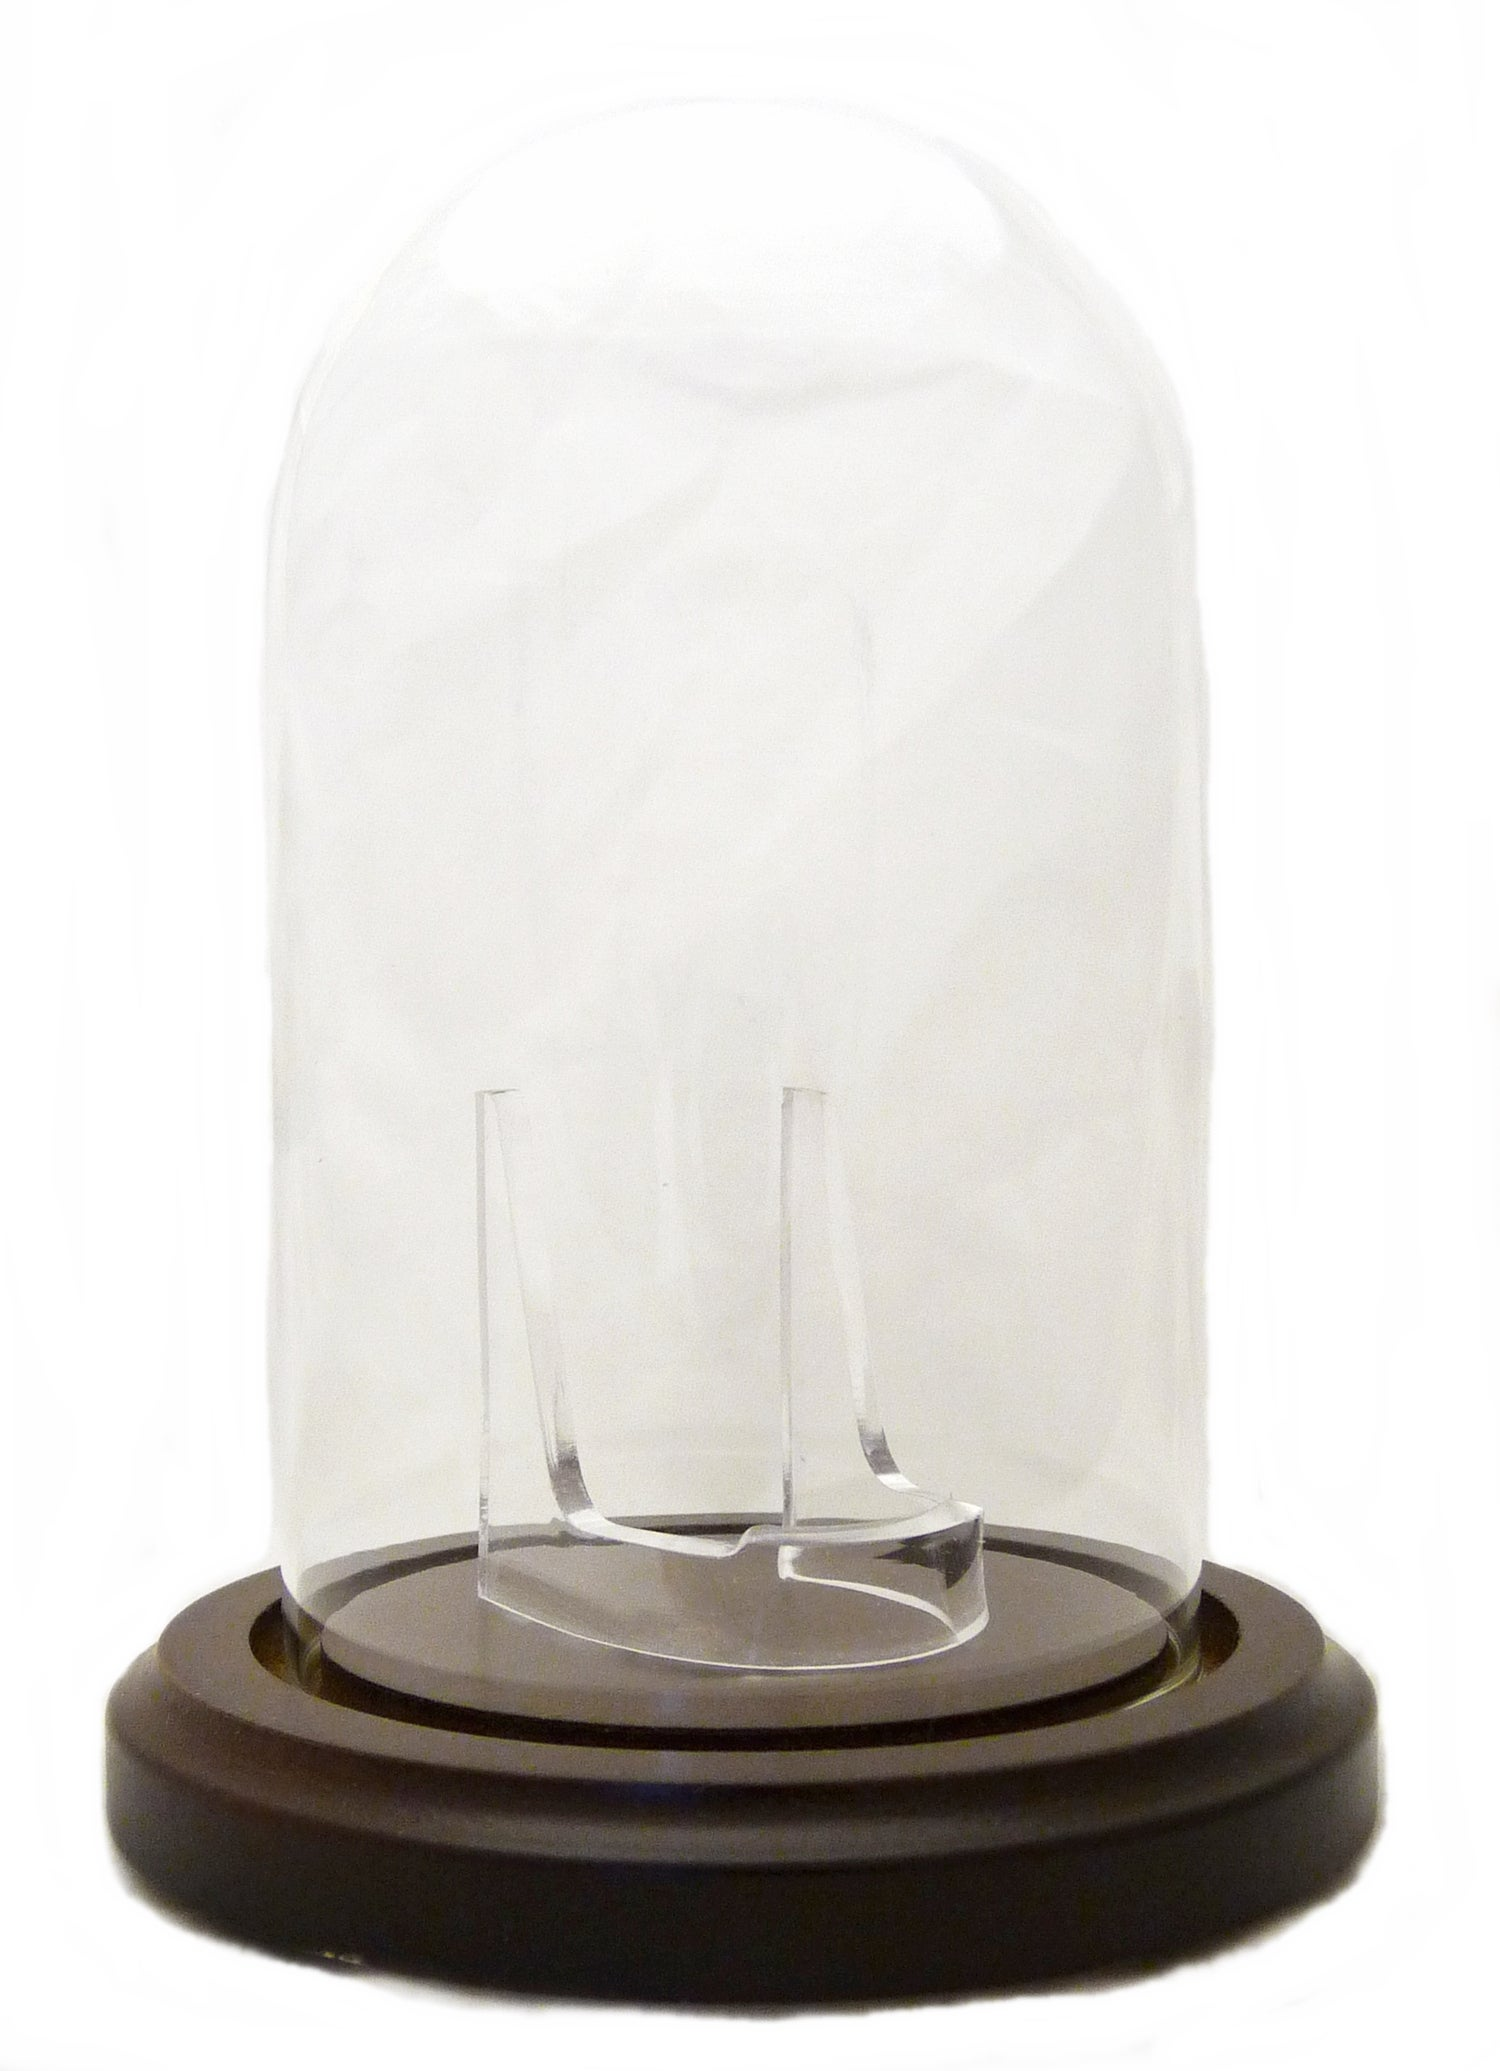 Image of Dueber Pocket Watch Glass Display Dome with Clear Stand, Walnut Stained Base 3″x5″ DBR238-30WD